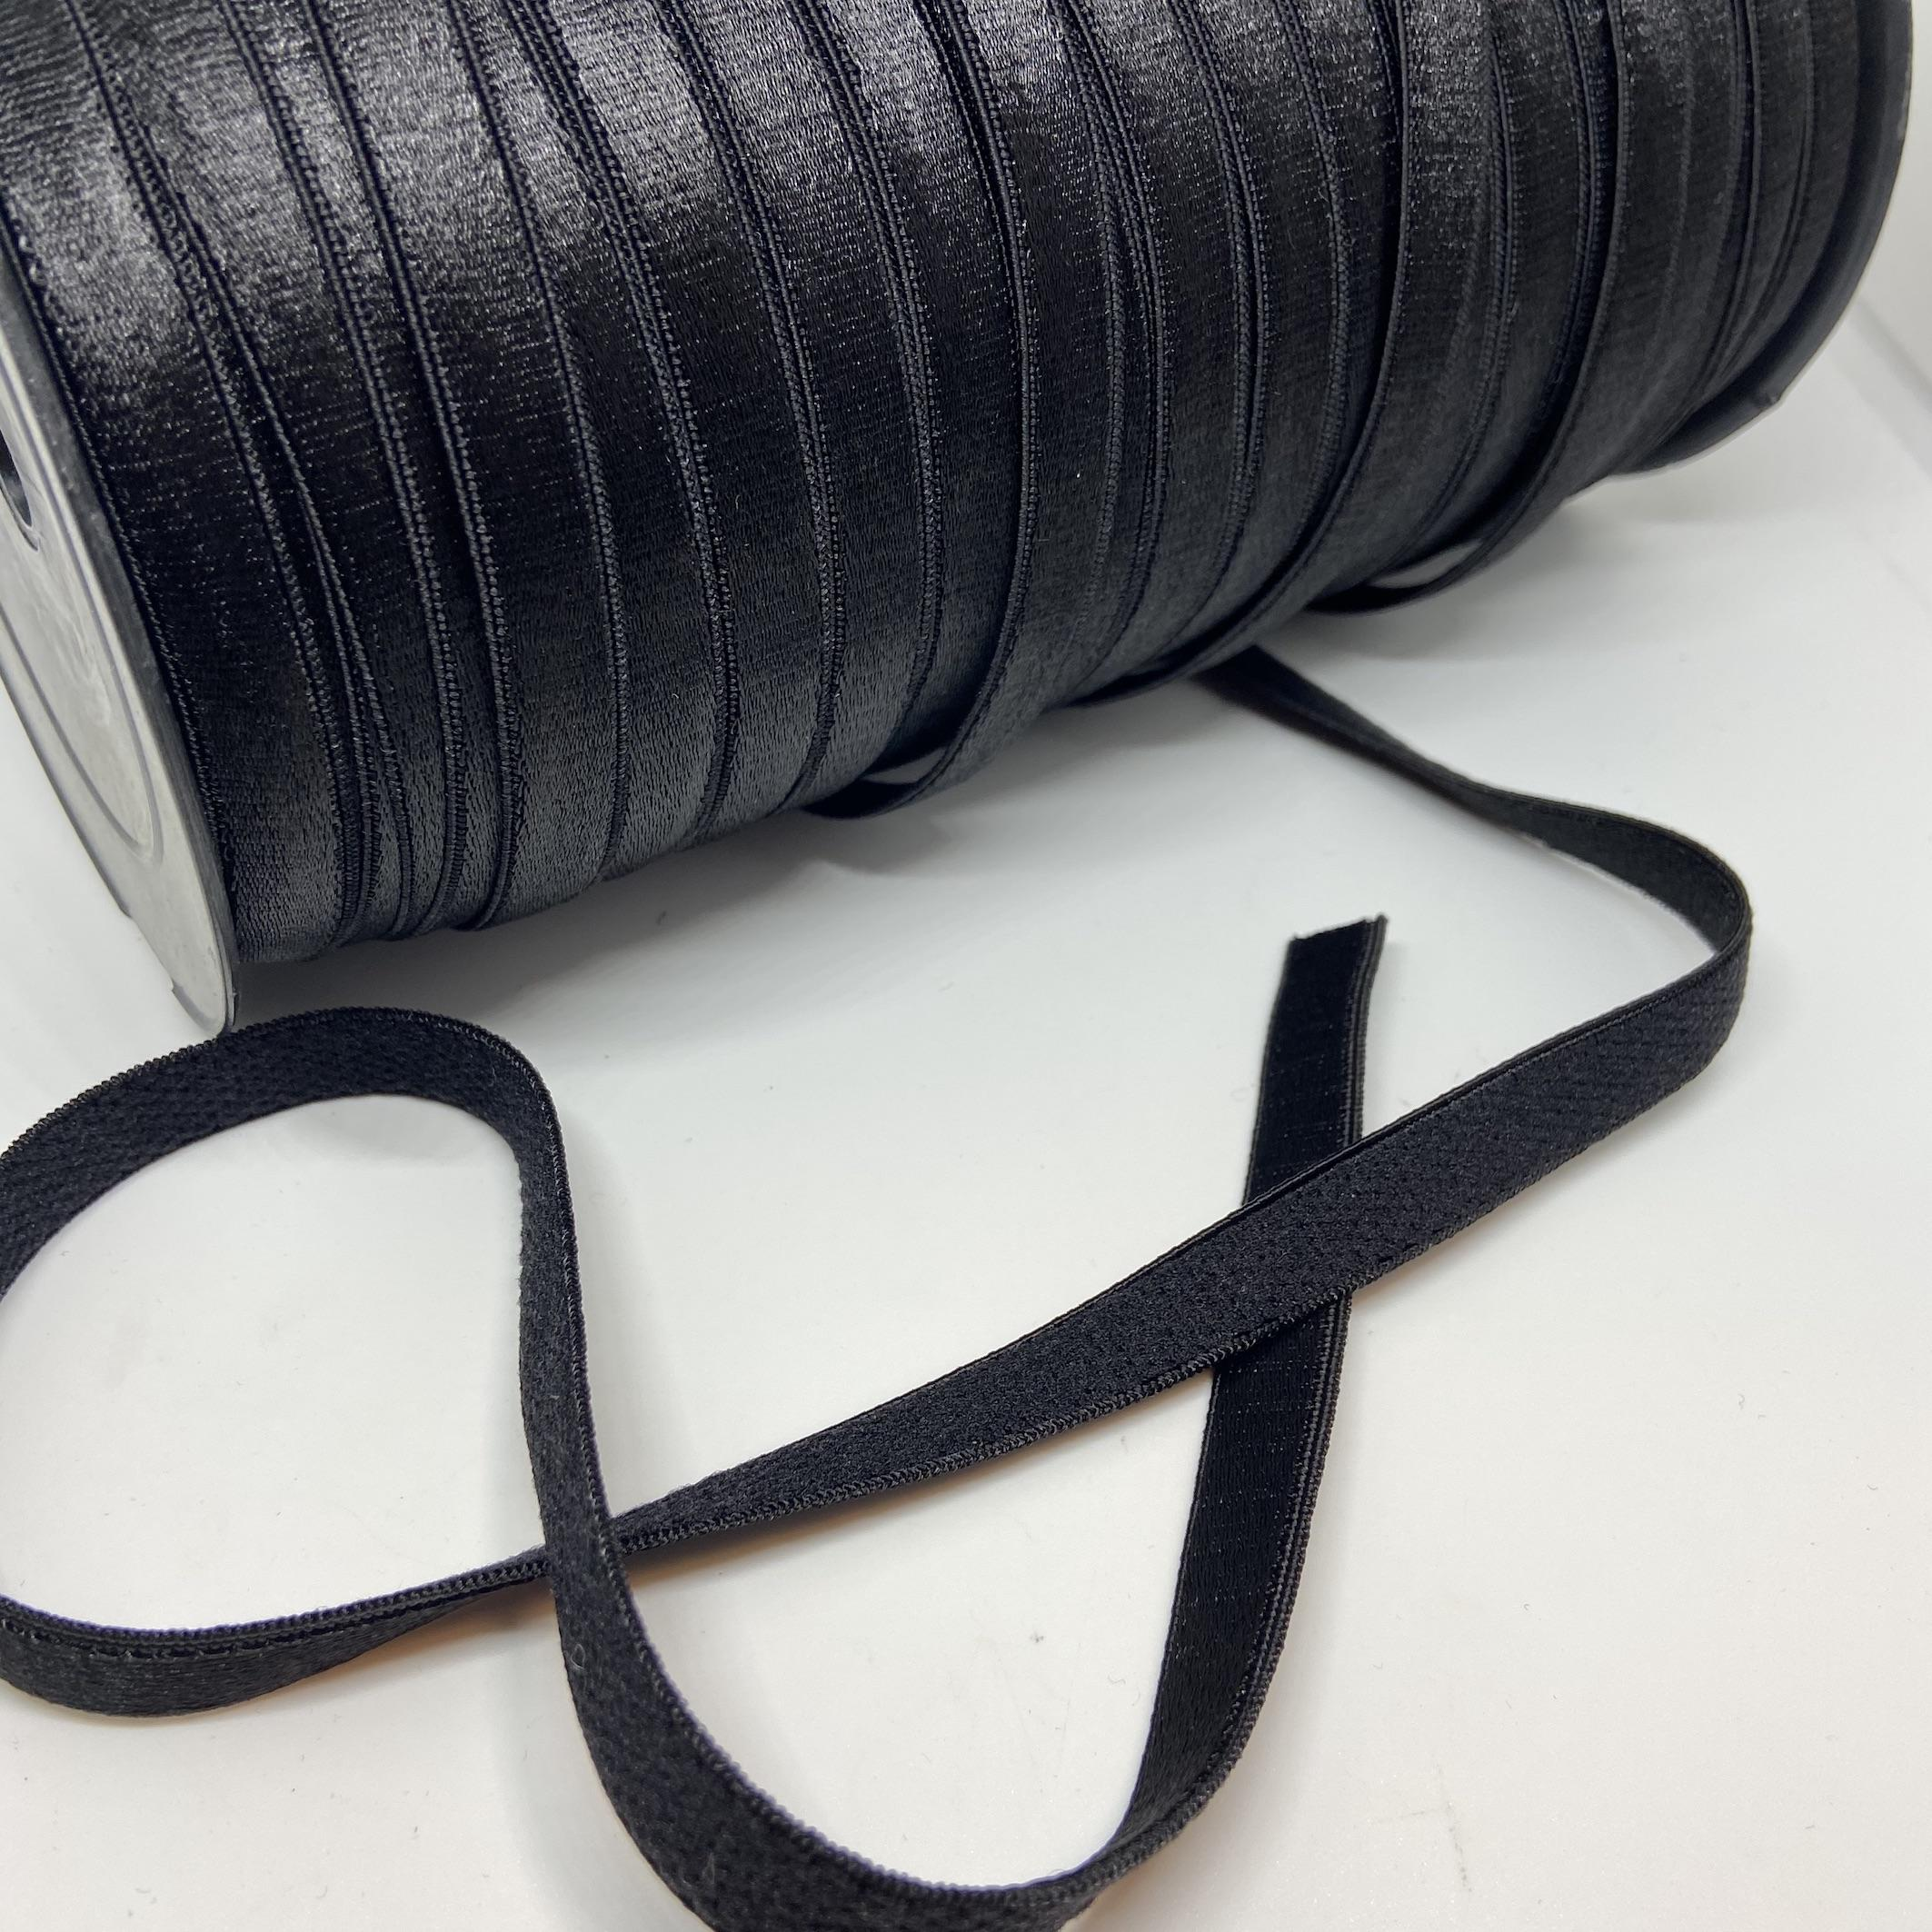 A full roll of a black shiny bra strap, with a soft back